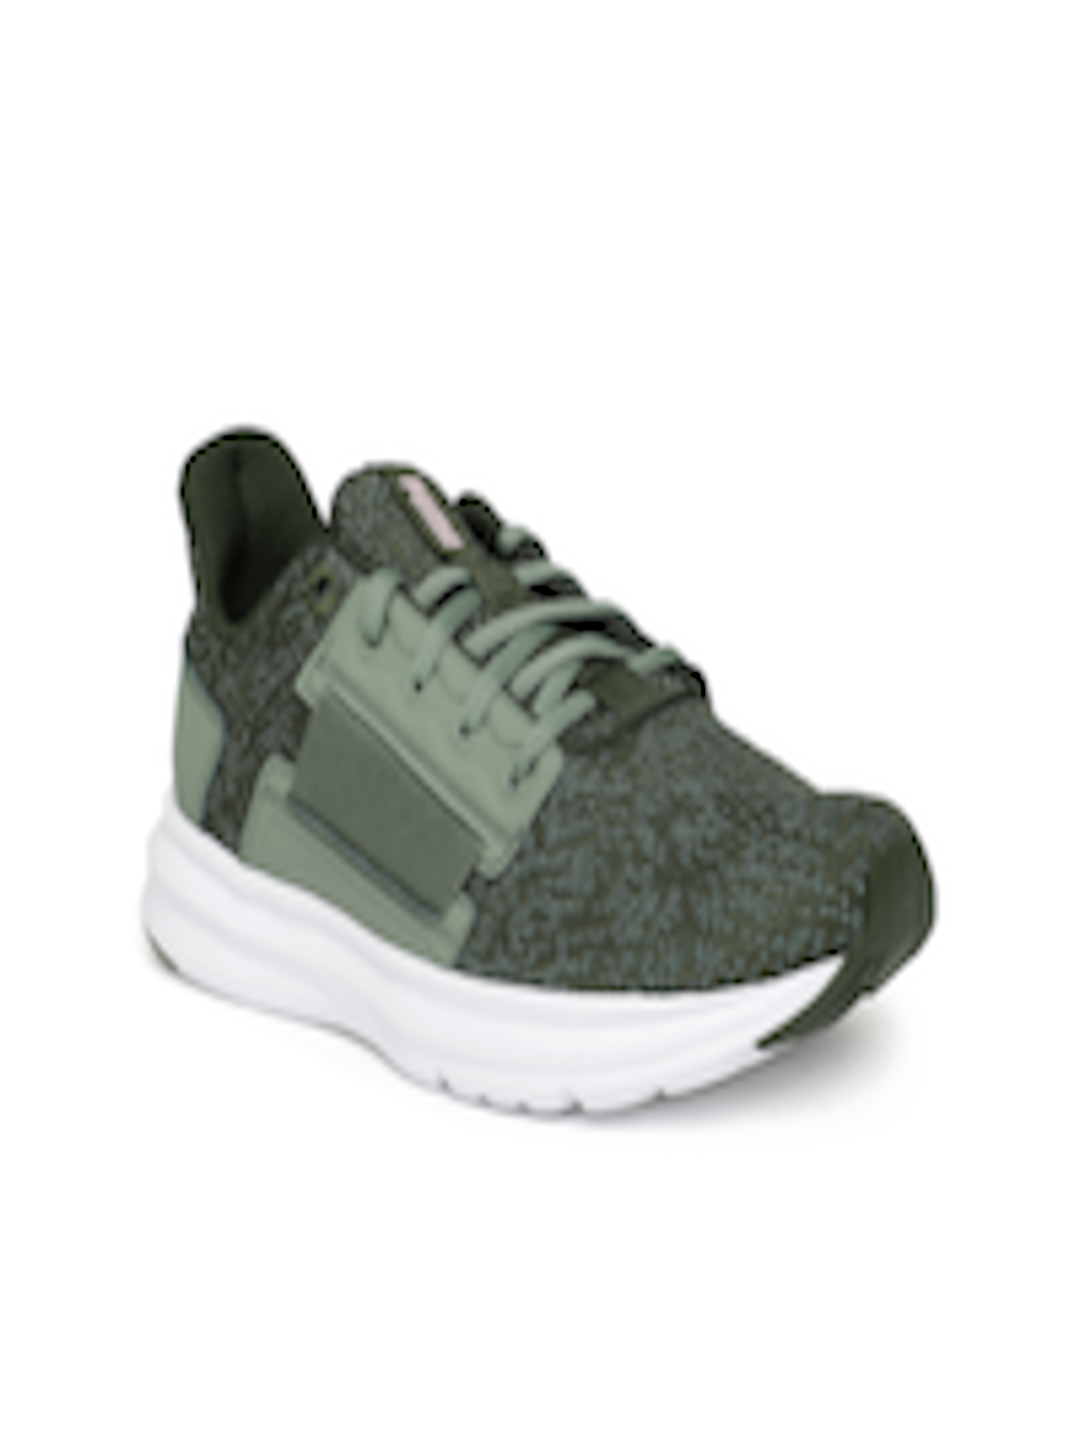 6a5c93e817873a Buy Puma Women Olive Green Enzo Street Knit Interest Training Shoes -  Sports Shoes for Women 6816100